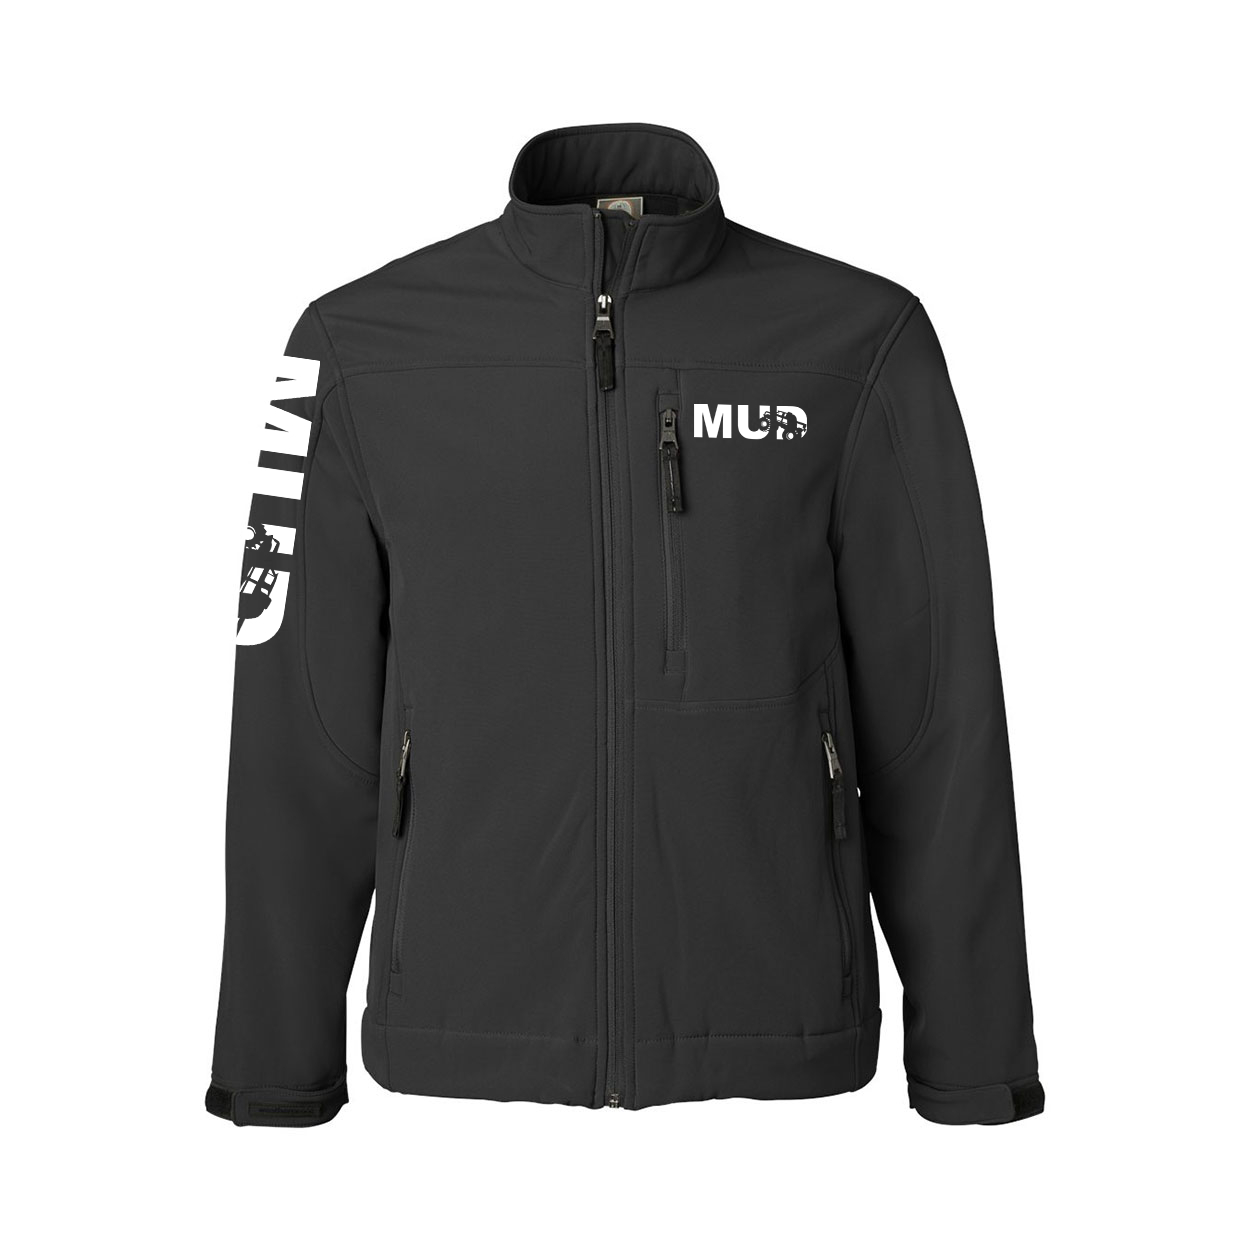 Mud Truck Logo Classic Soft Shell Weatherproof Jacket (White Logo)